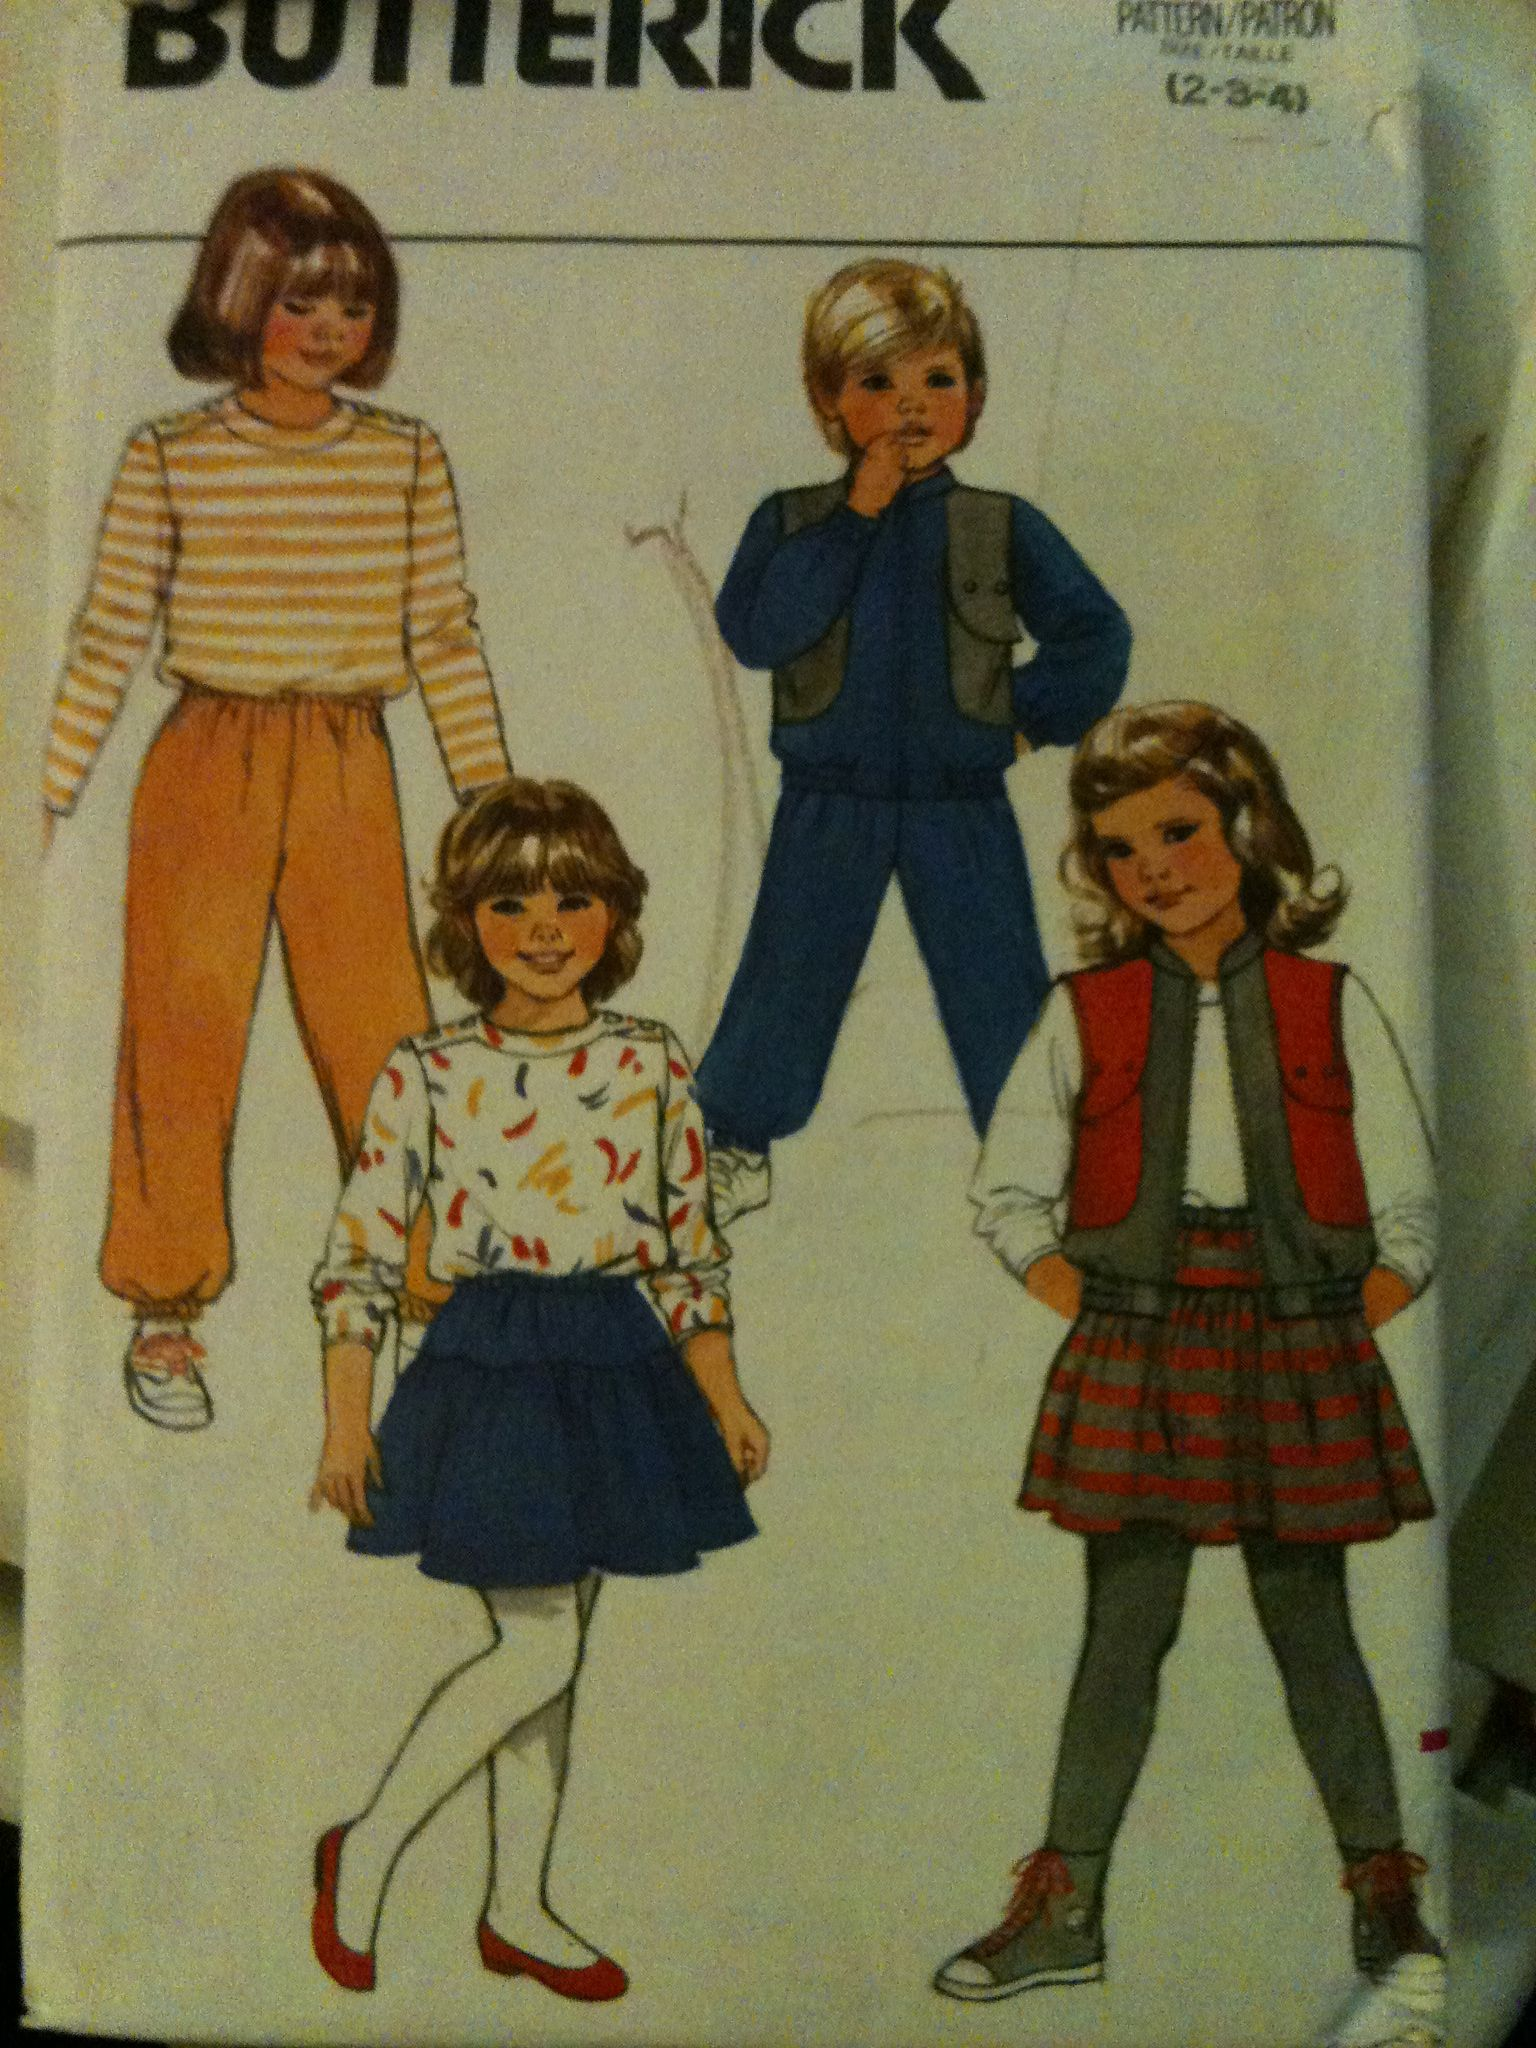 Butterick #3485. Boys' and Girls' vest top skirt and pants, size 2-4. Looks to be from the 1980's.